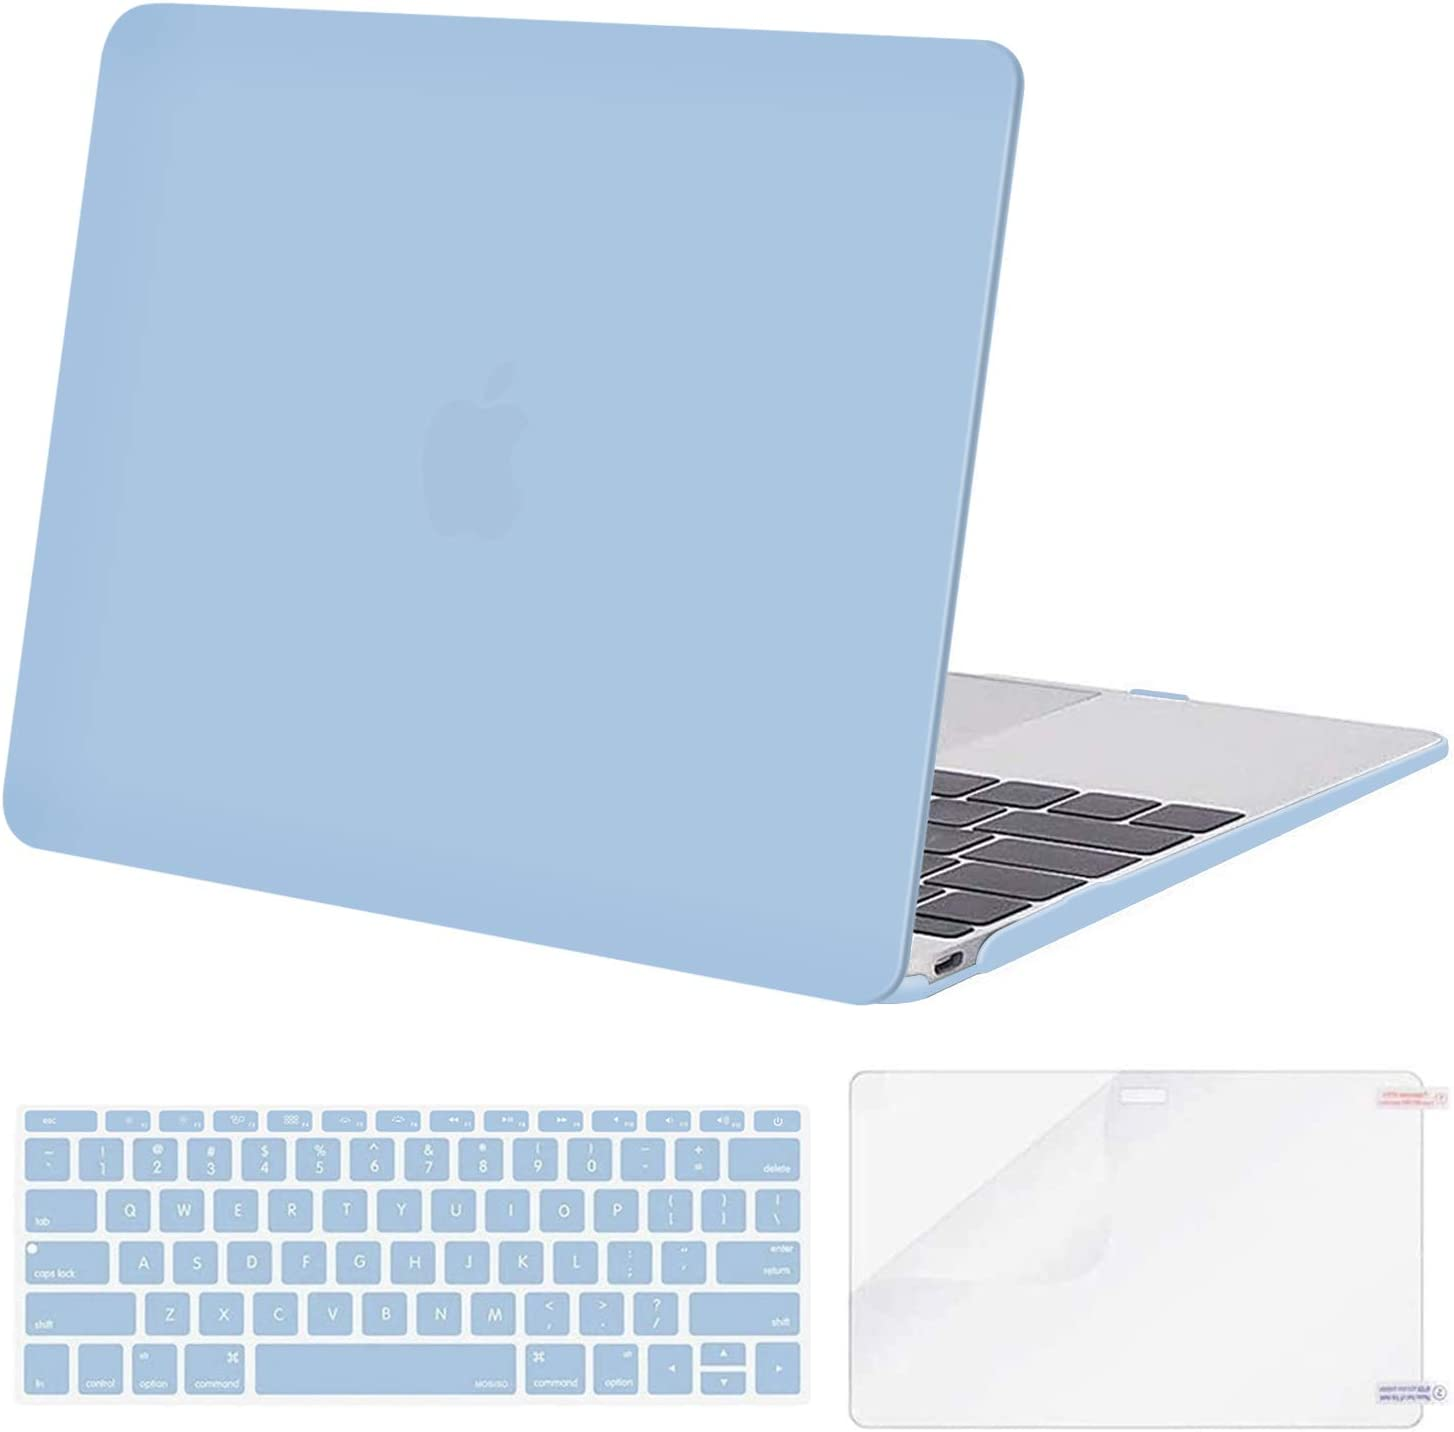 MOSISO Plastic Hard Shell Case & Keyboard Cover Skin & Screen Protector Compatible with MacBook 12 inch with Retina Display (Model A1534, Release 2017 2016 2015), Airy Blue